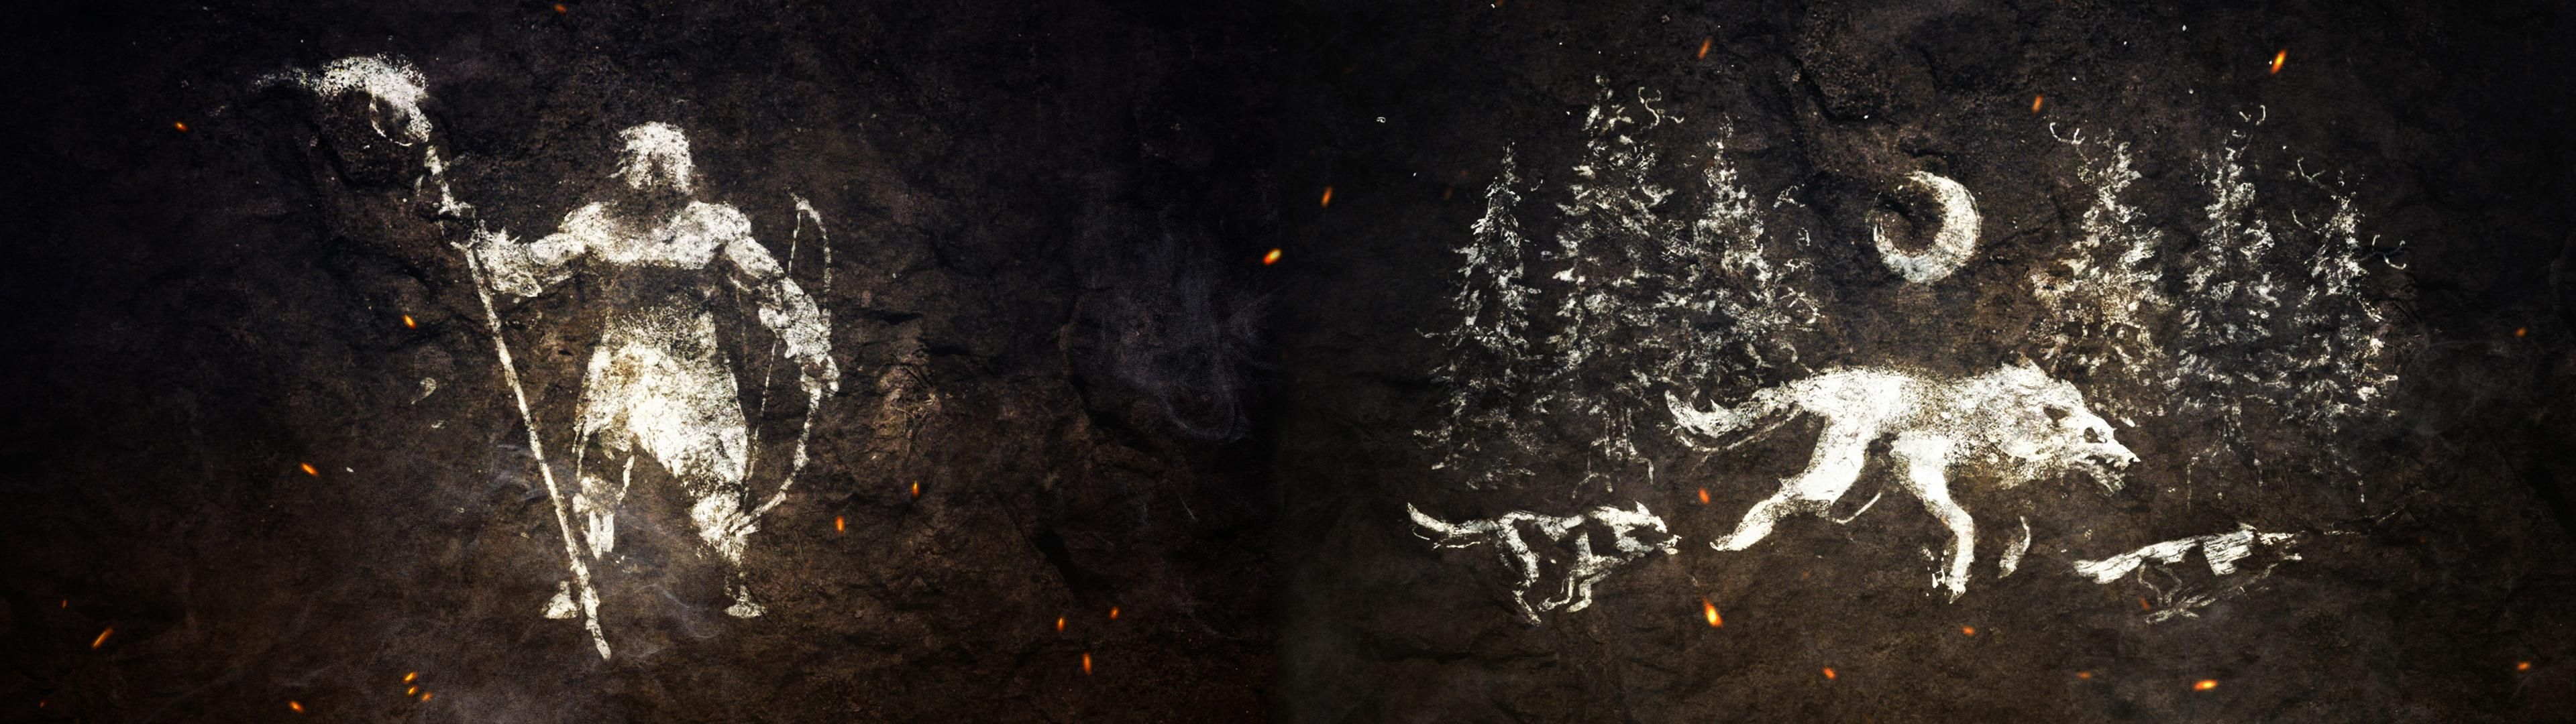 made a farcry primal dual monitor wallpaper 3840x1080